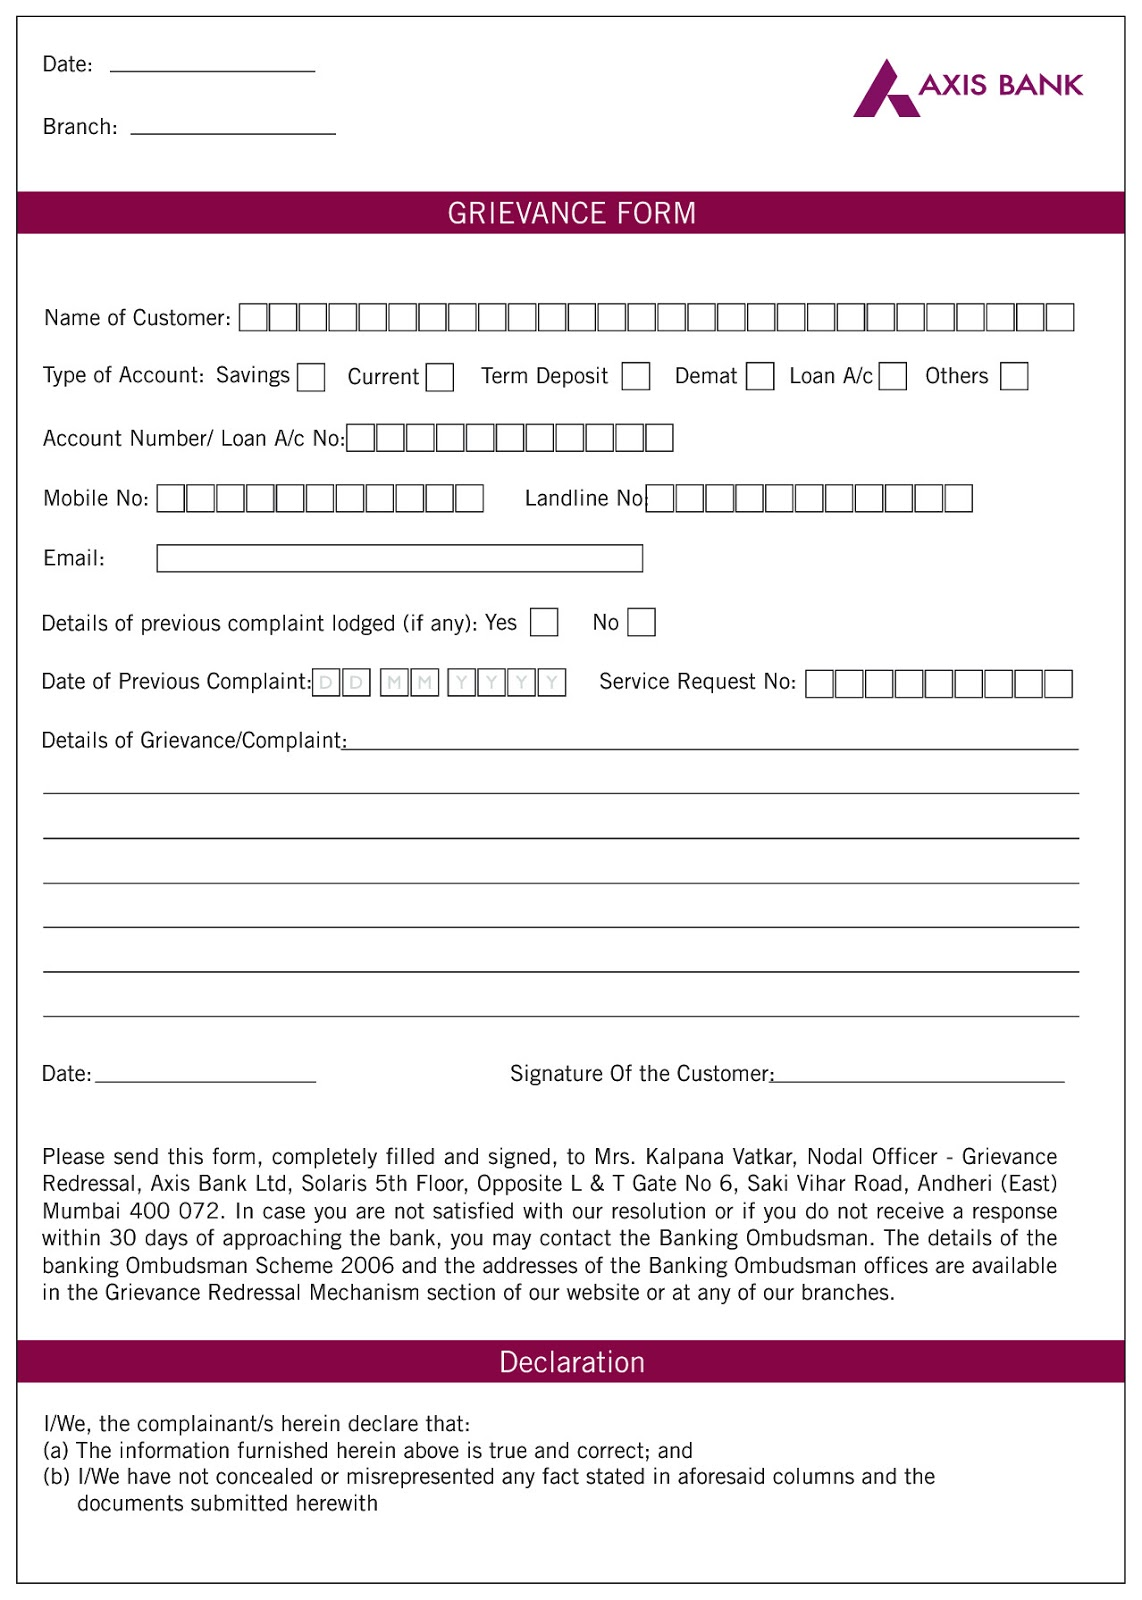 Union Bank Of India Rtgs Form Kvb You Can Download Free On The Site Melbourneovenrepairs